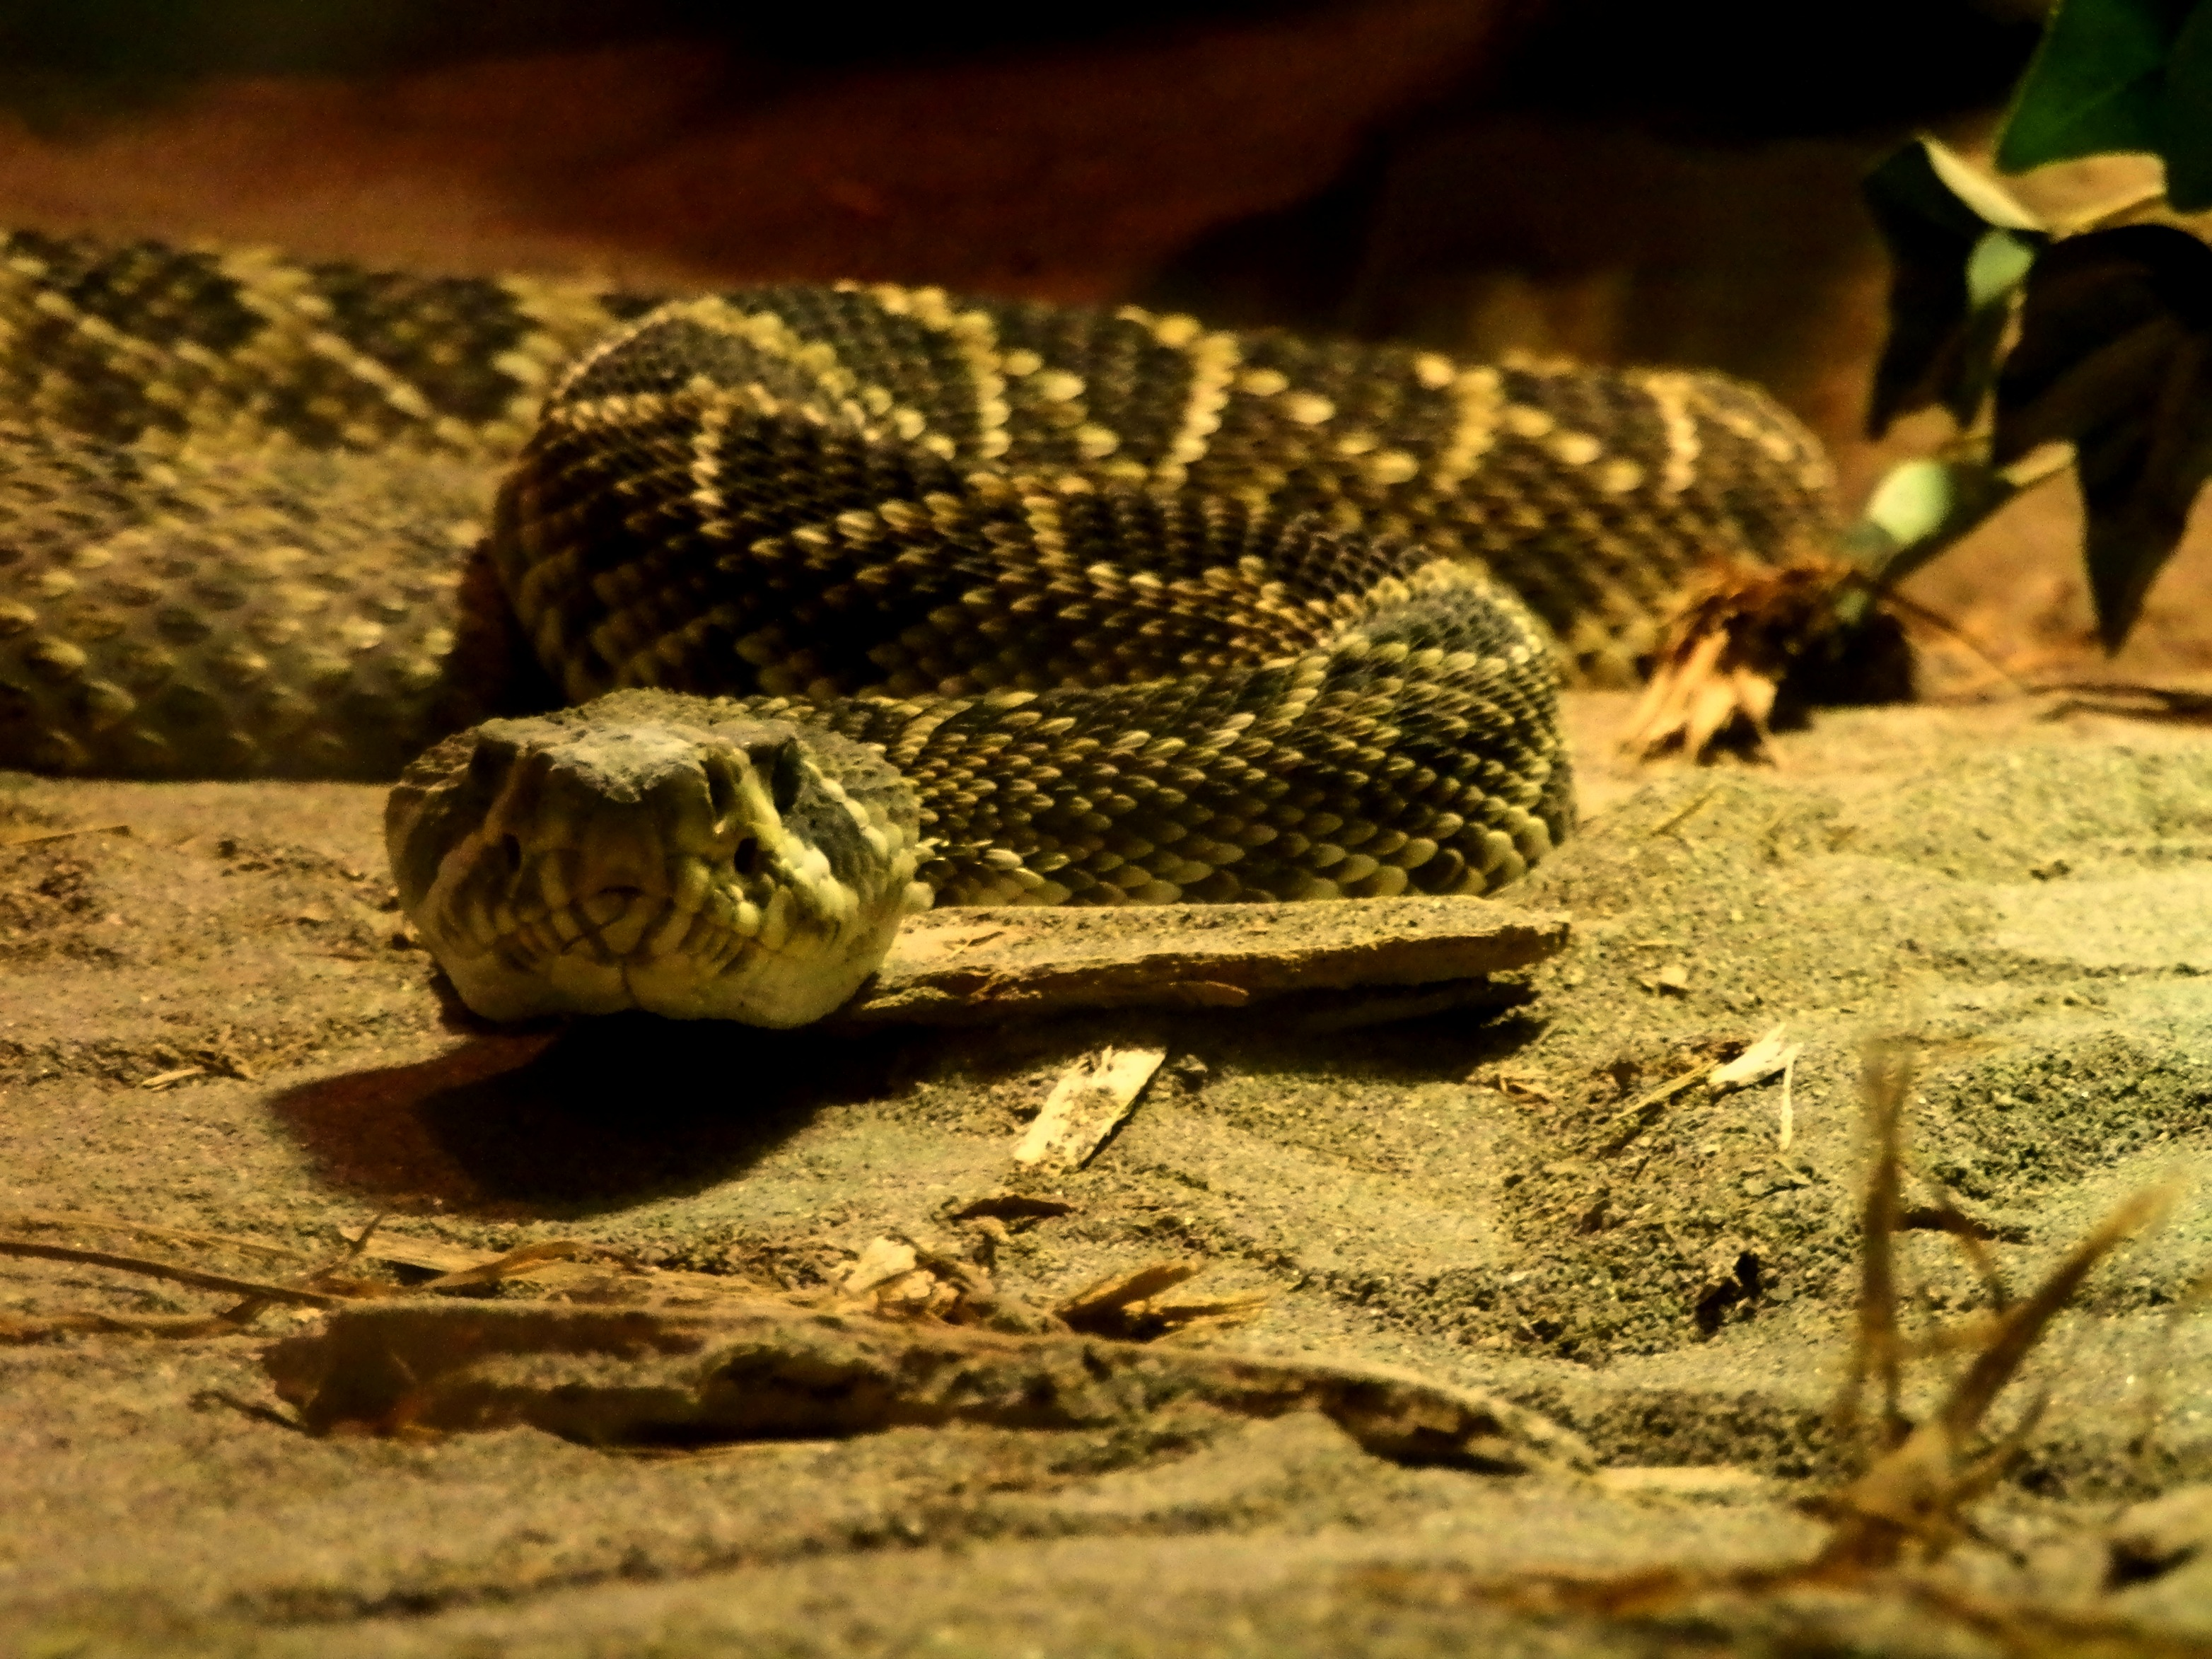 Indian River Reptile Zoo | Lady of the Zoos